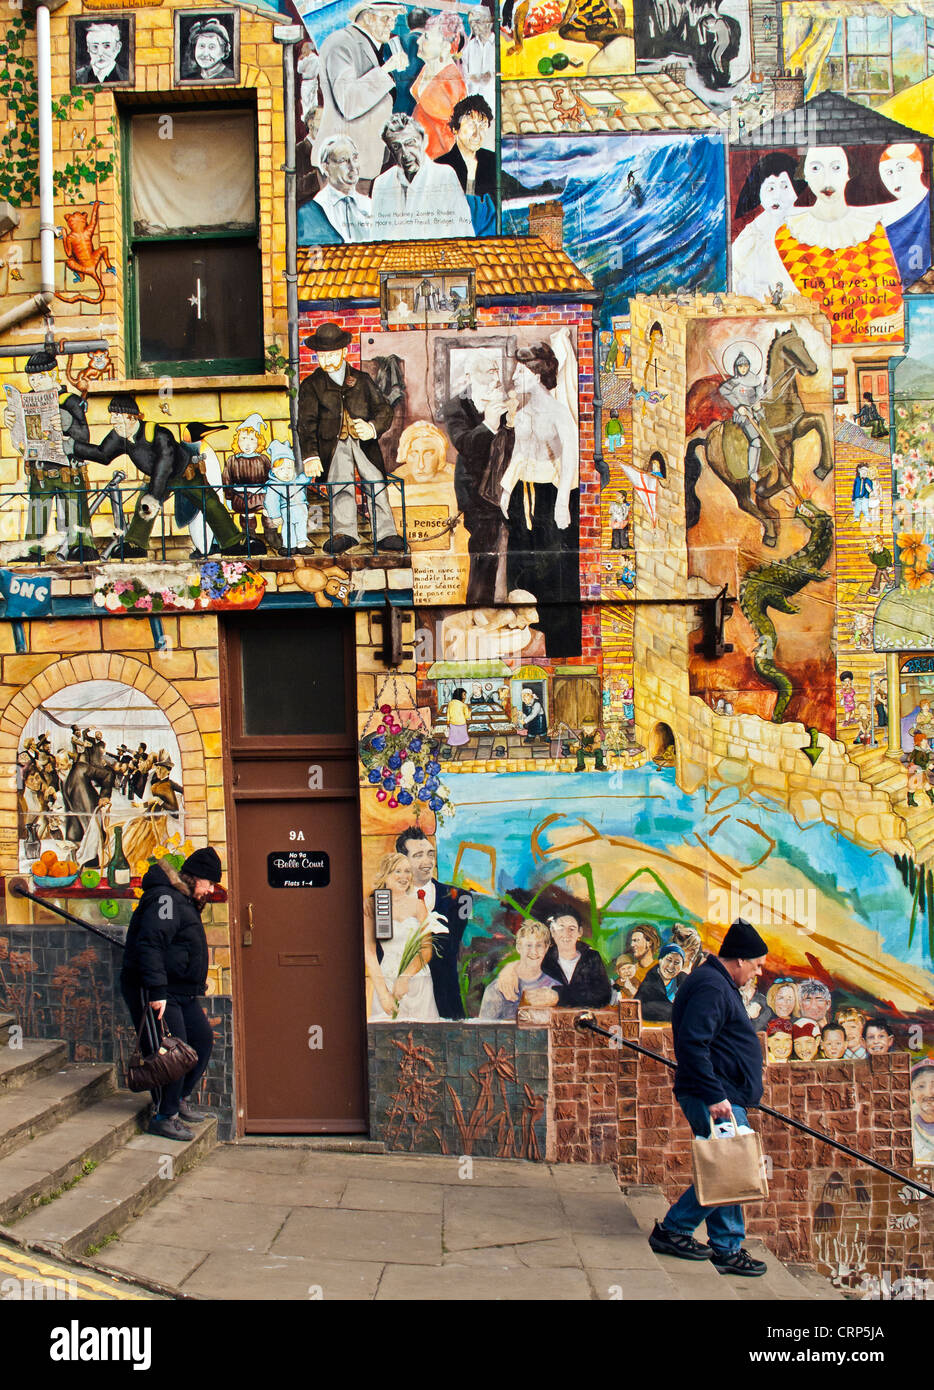 Two people descending flights of steps at Blands Cliff in front of wall murals painted by local artists. - Stock Image